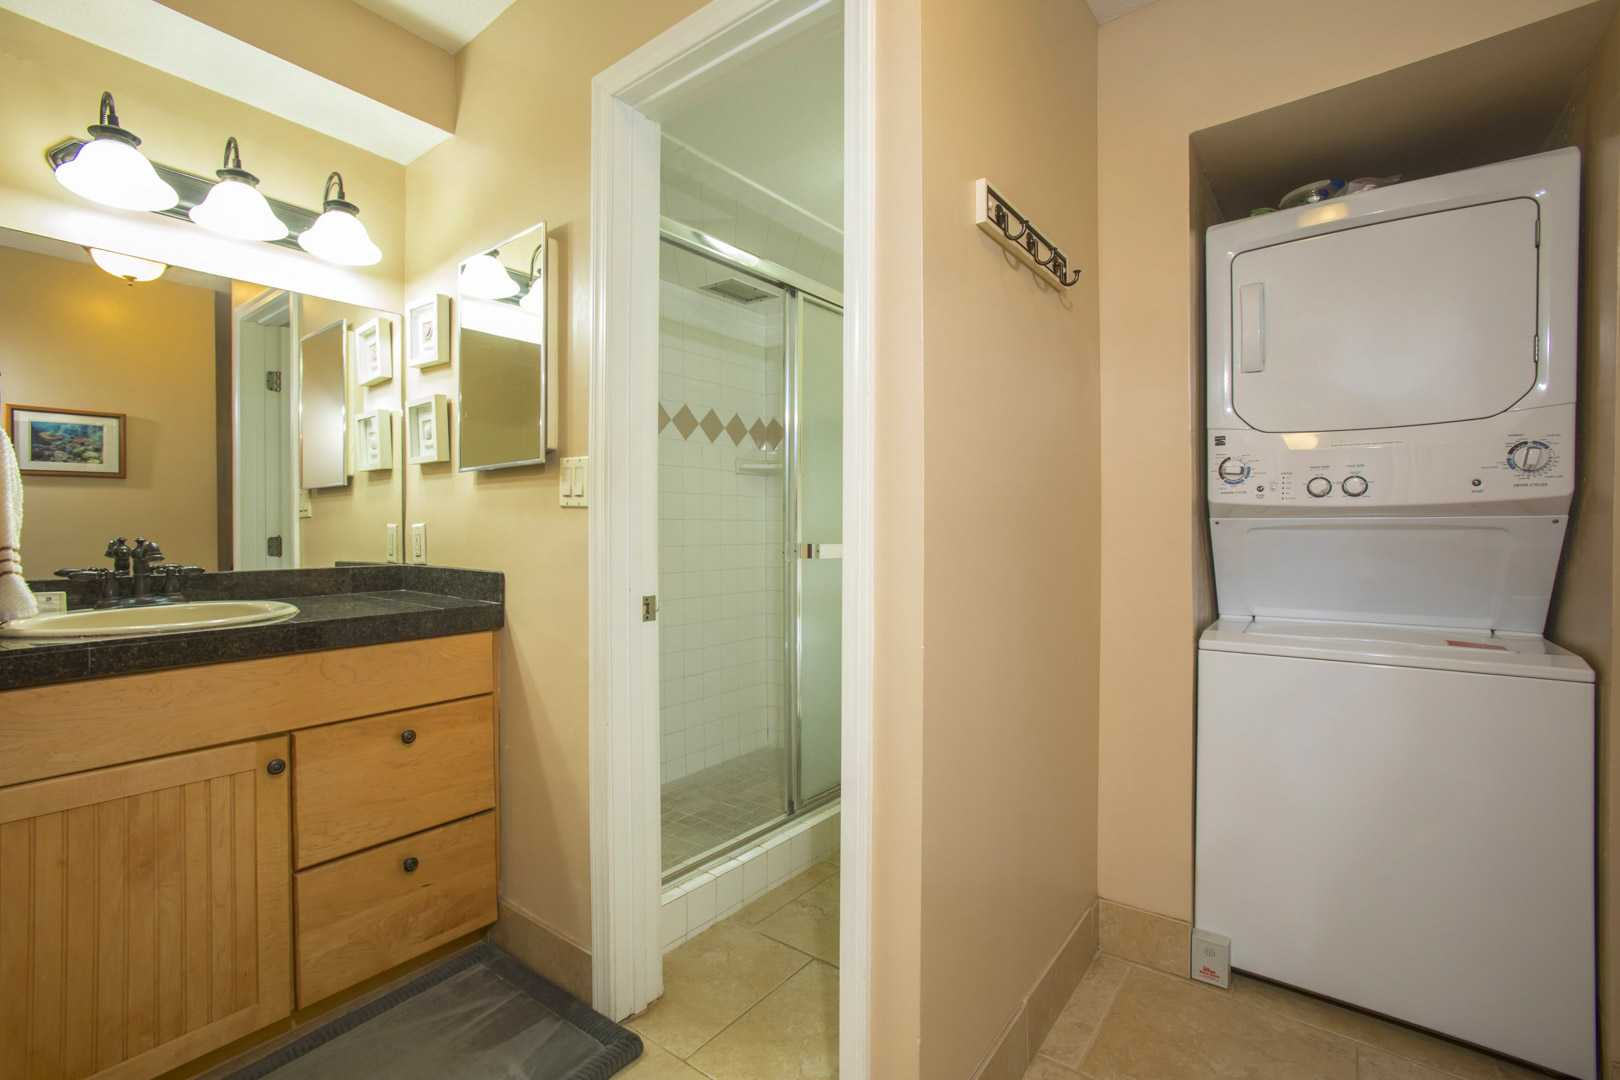 Vanity area and washer and dryer for your convenience